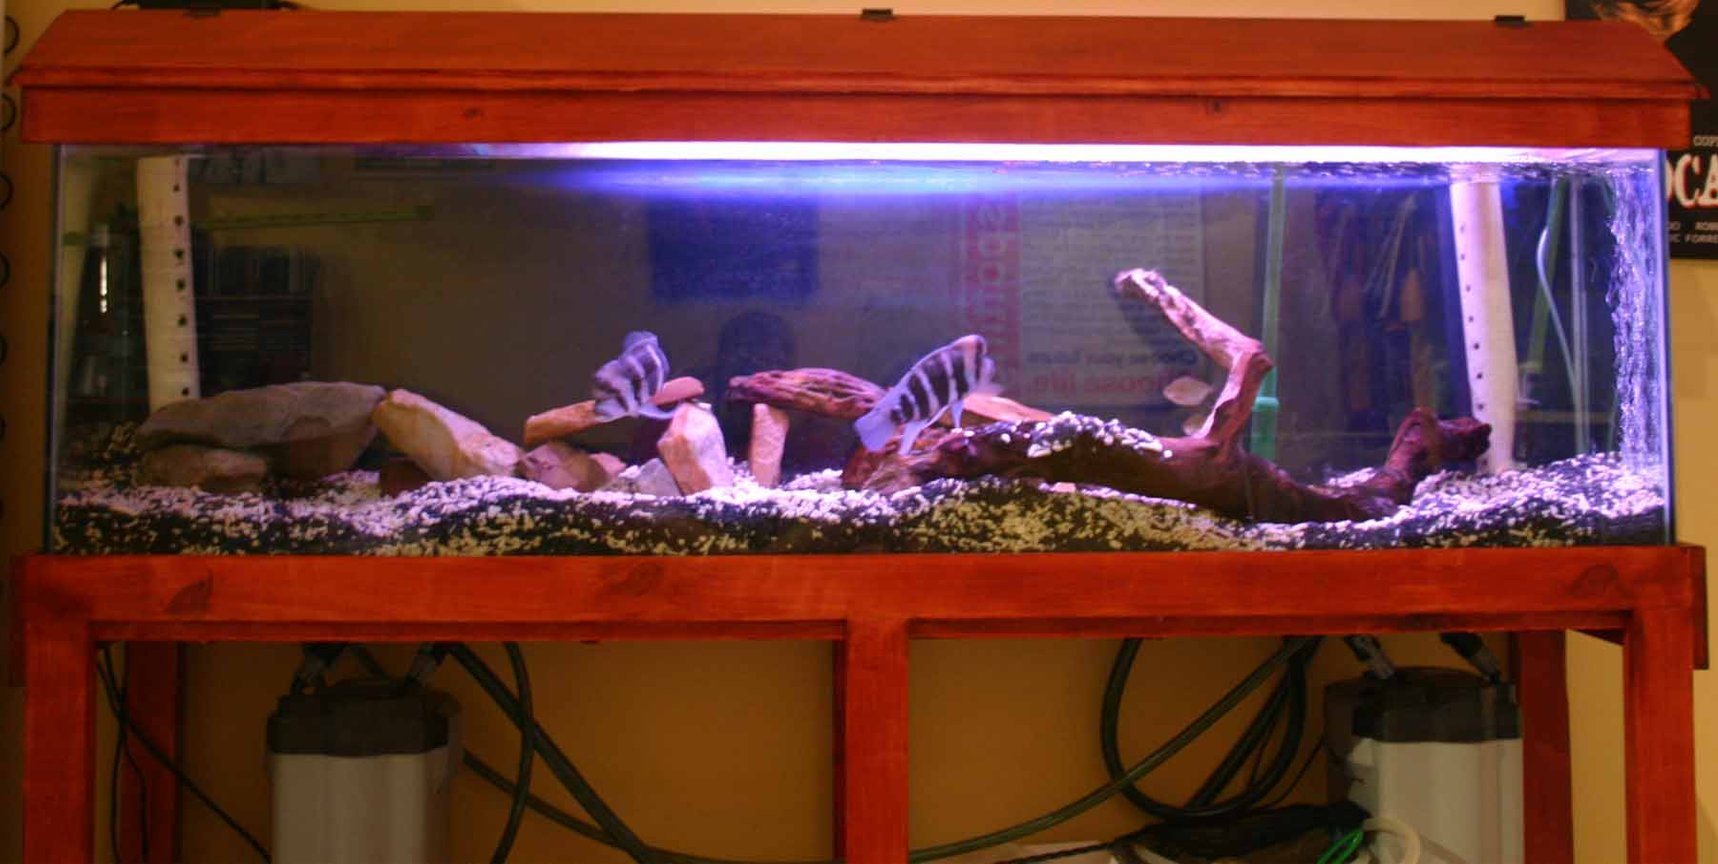 80 gallons freshwater fish tank (mostly fish and non-living decorations) - Frontosa Tank (Without Flash)